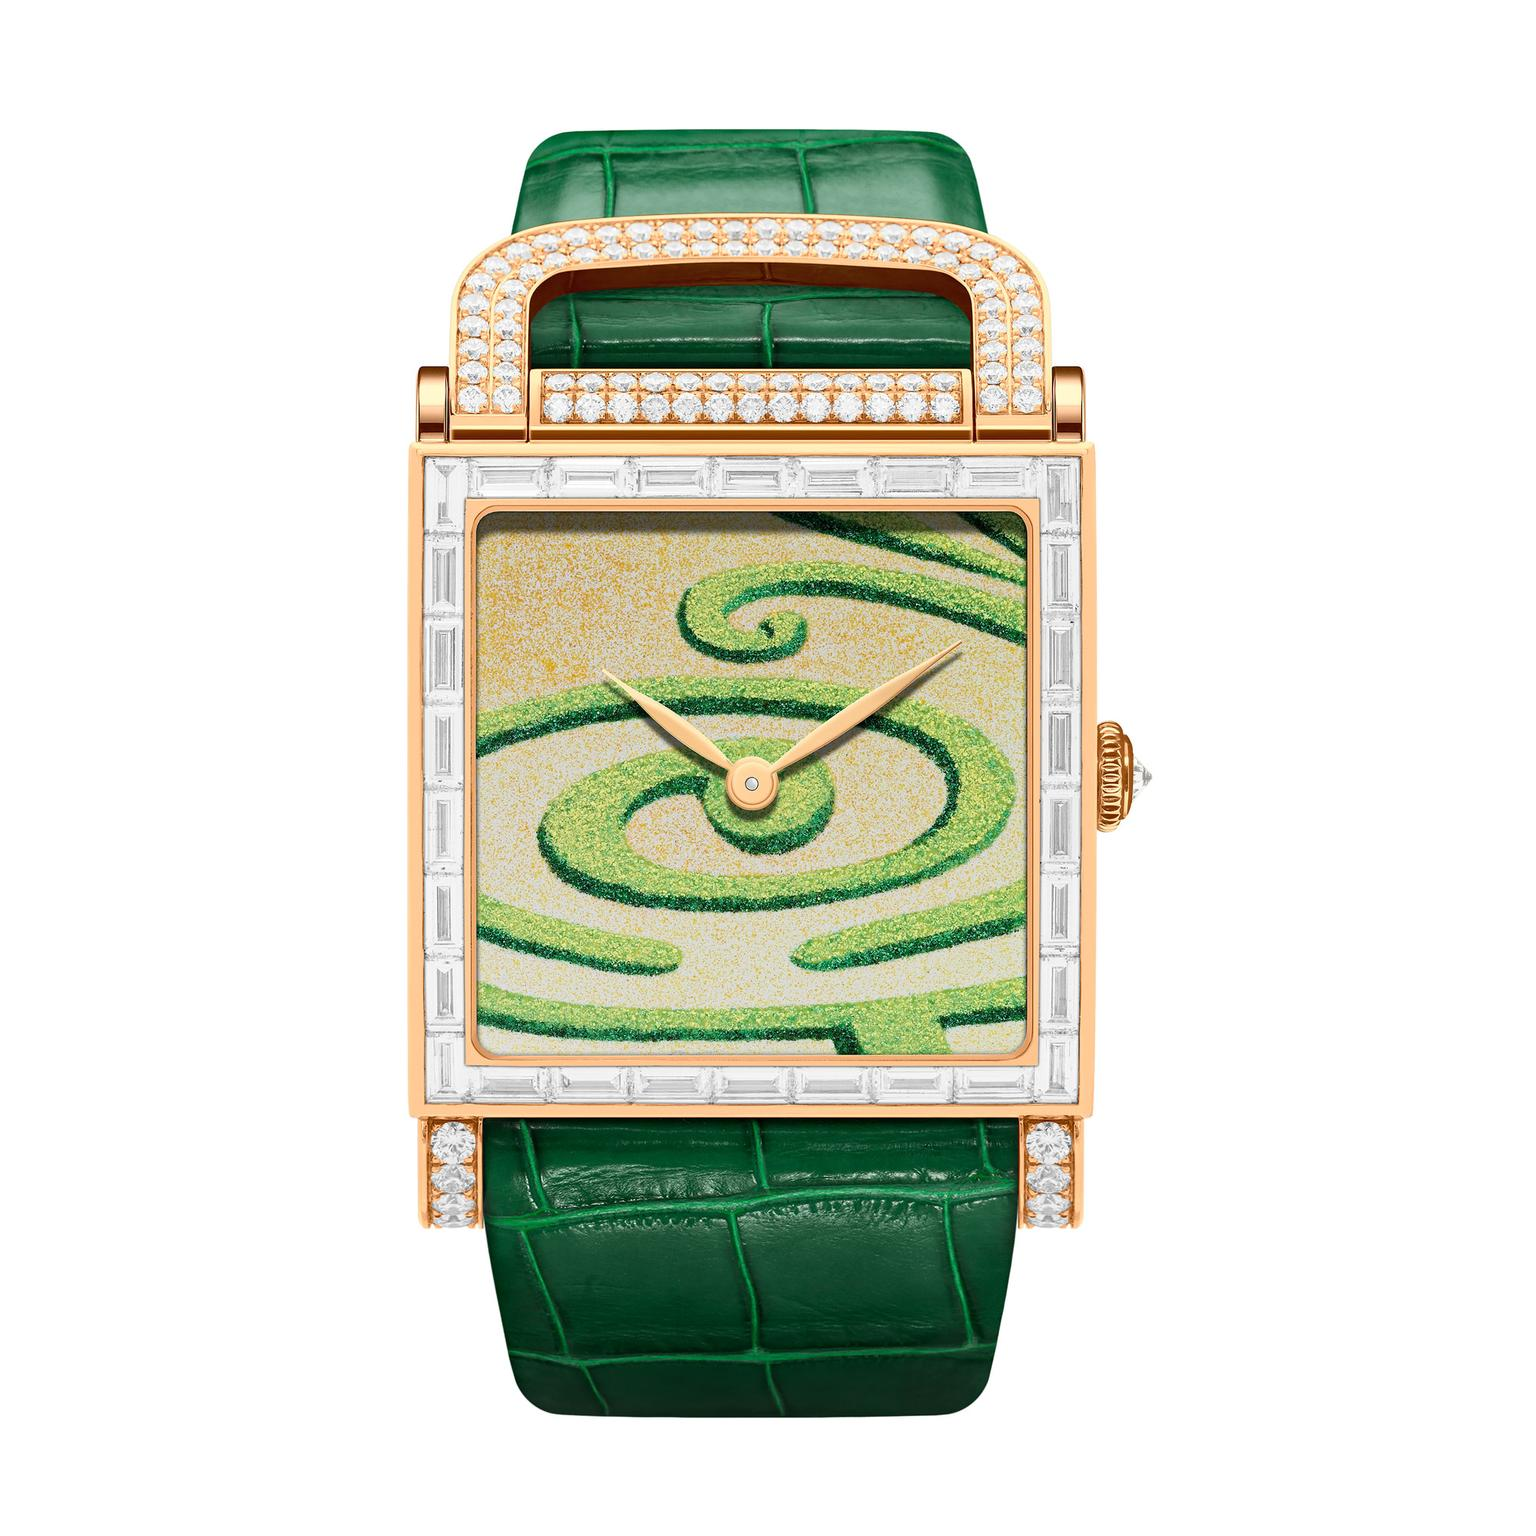 DeLaneau Arabesque watch